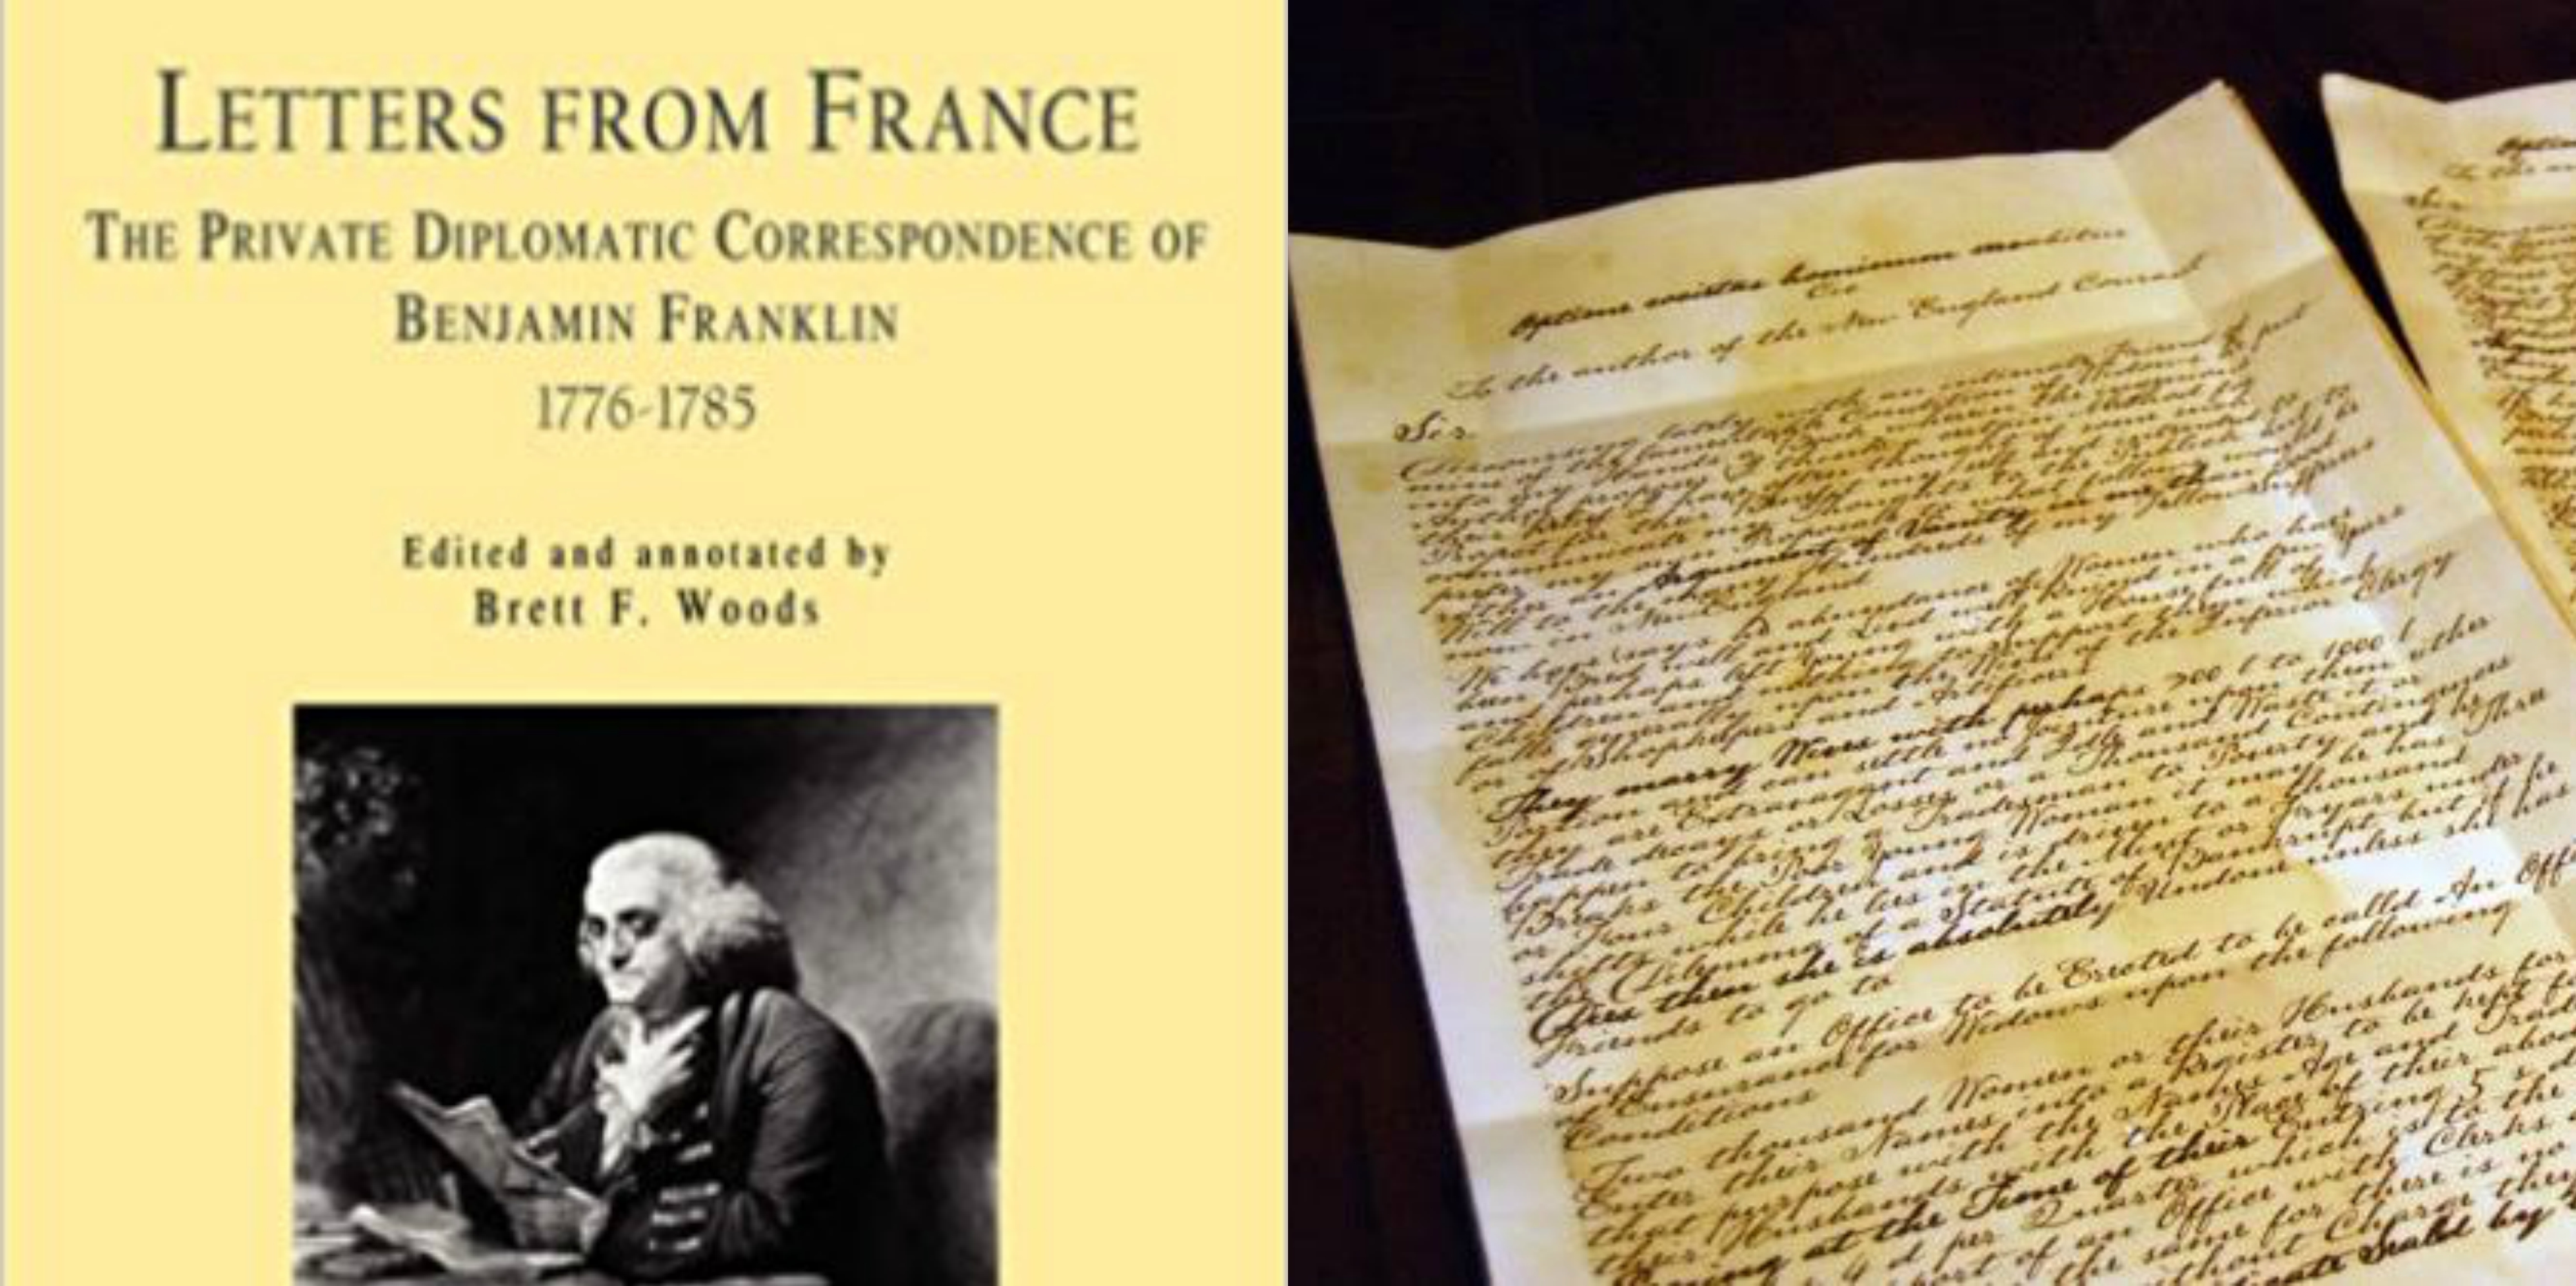 Benjamin Franklin: Statesman, Scientist, Diplomat (Annotated)